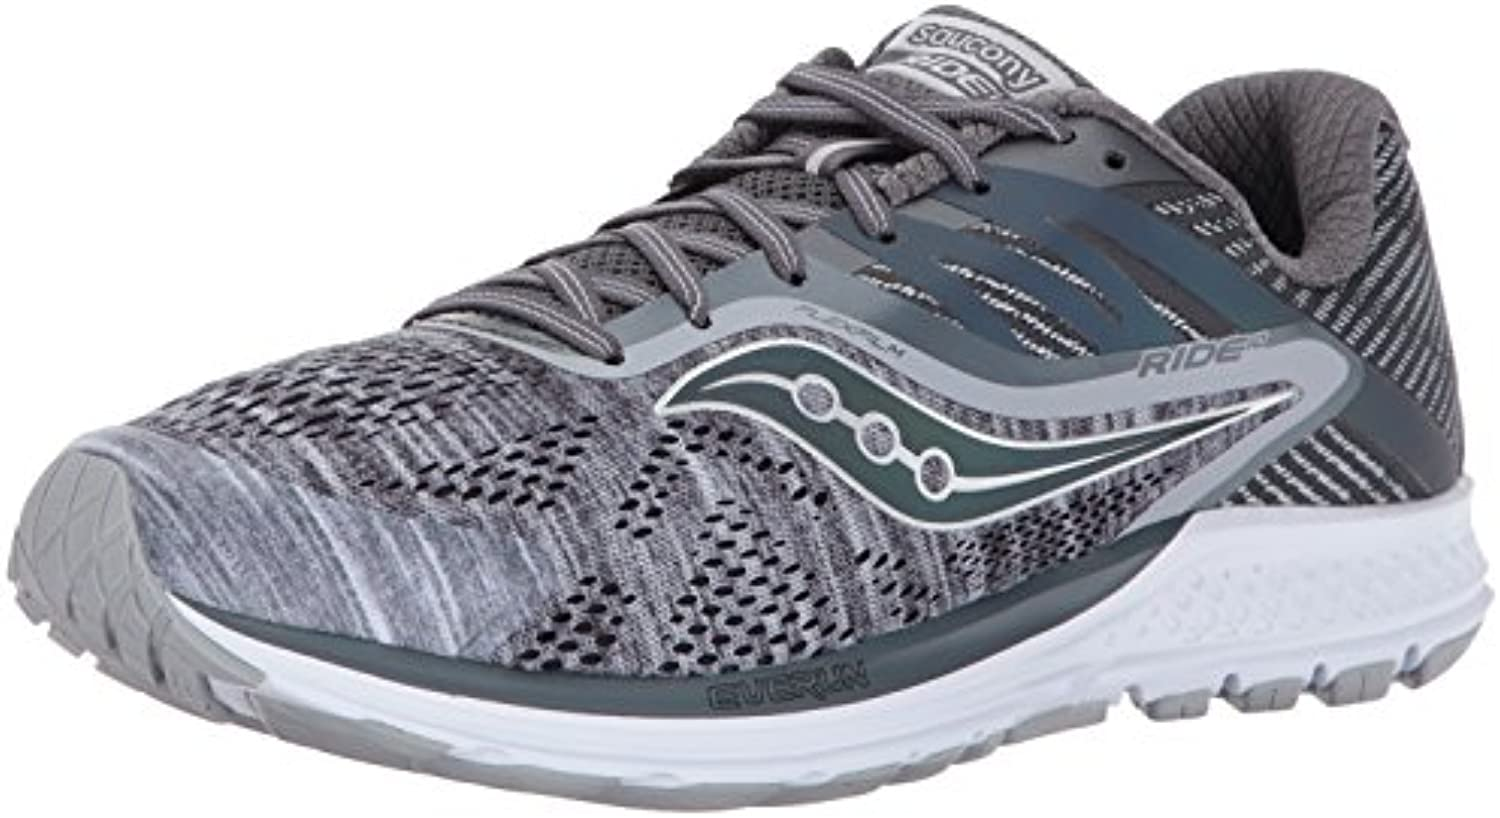 ZAPATILLAS SAUCONY RIDE 10 GRIS Talla 44.5